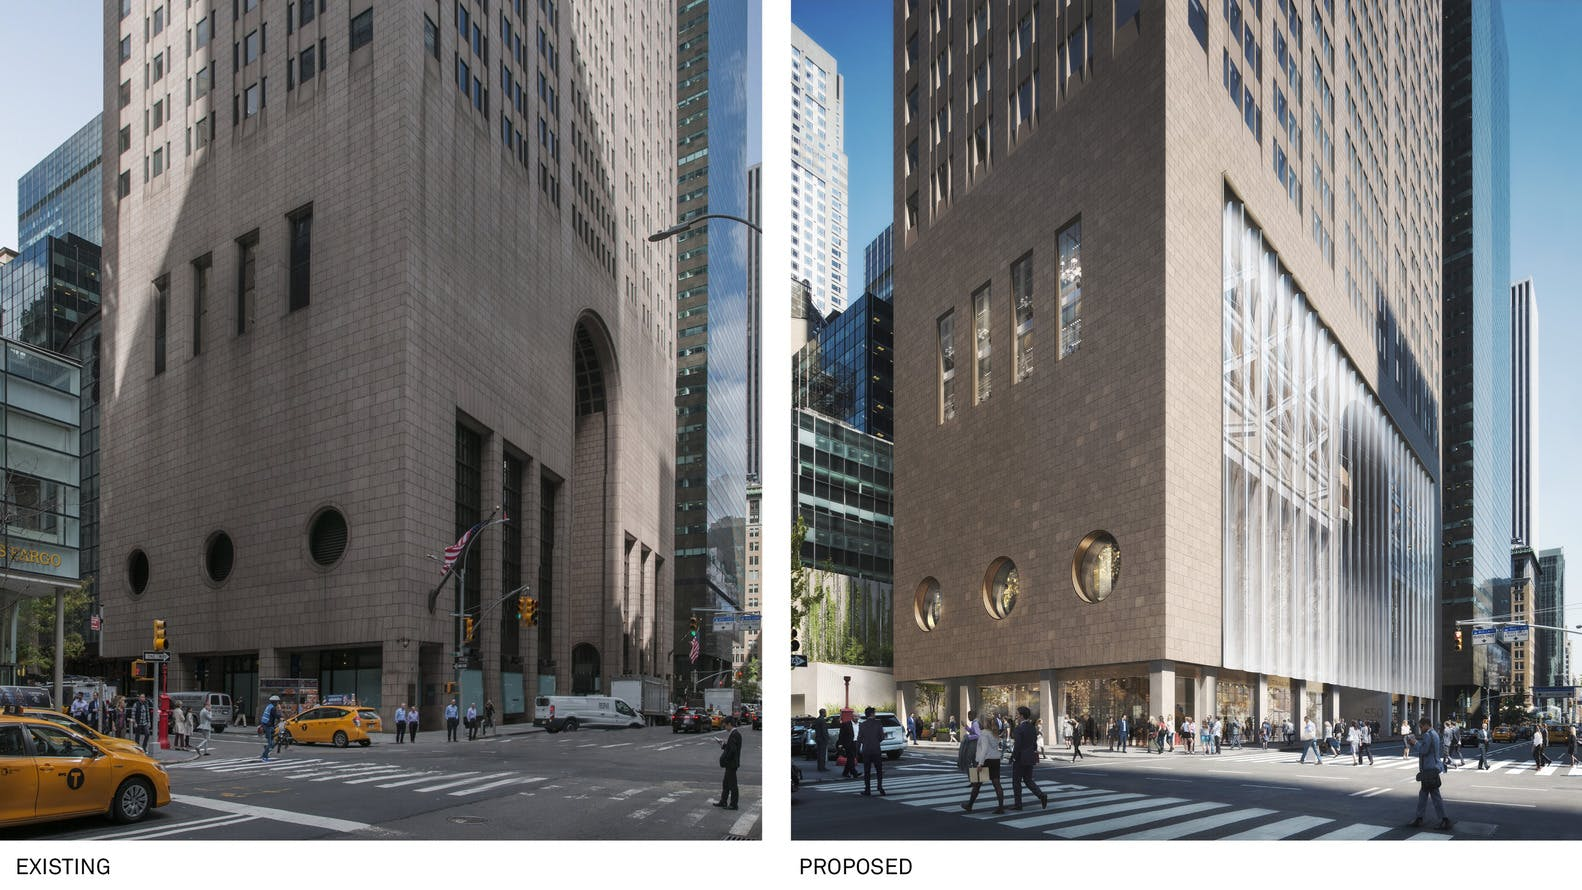 Comparison of existing and proposed street level views